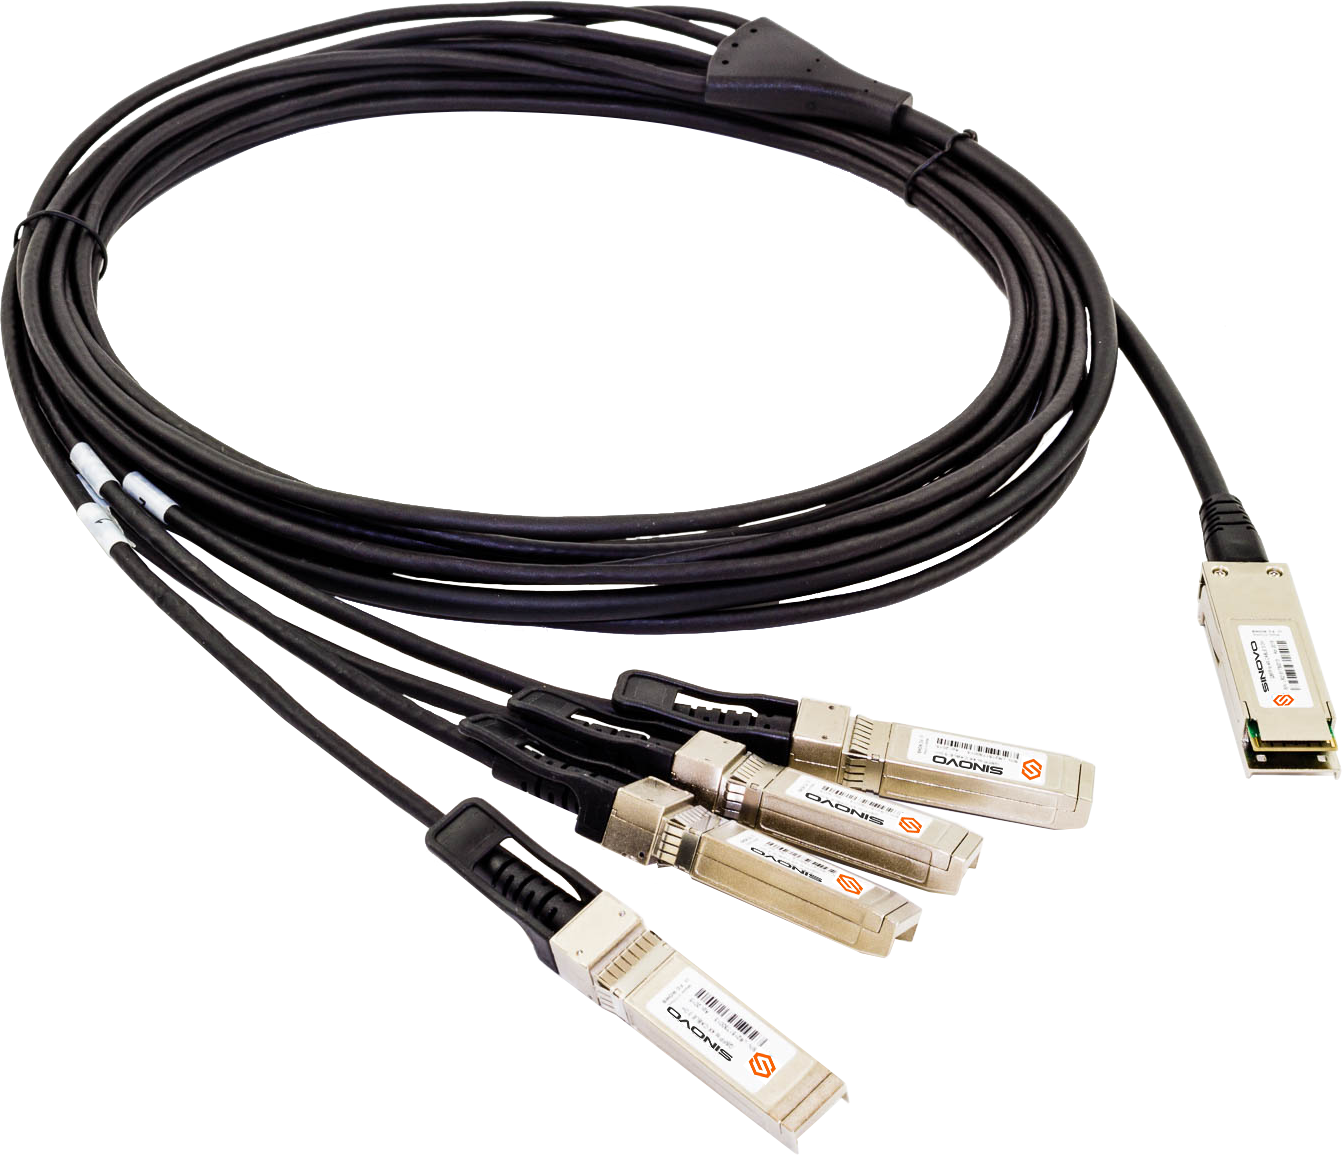 Sinovo Telecom 100G QSFP28 DAC and AOC Cables